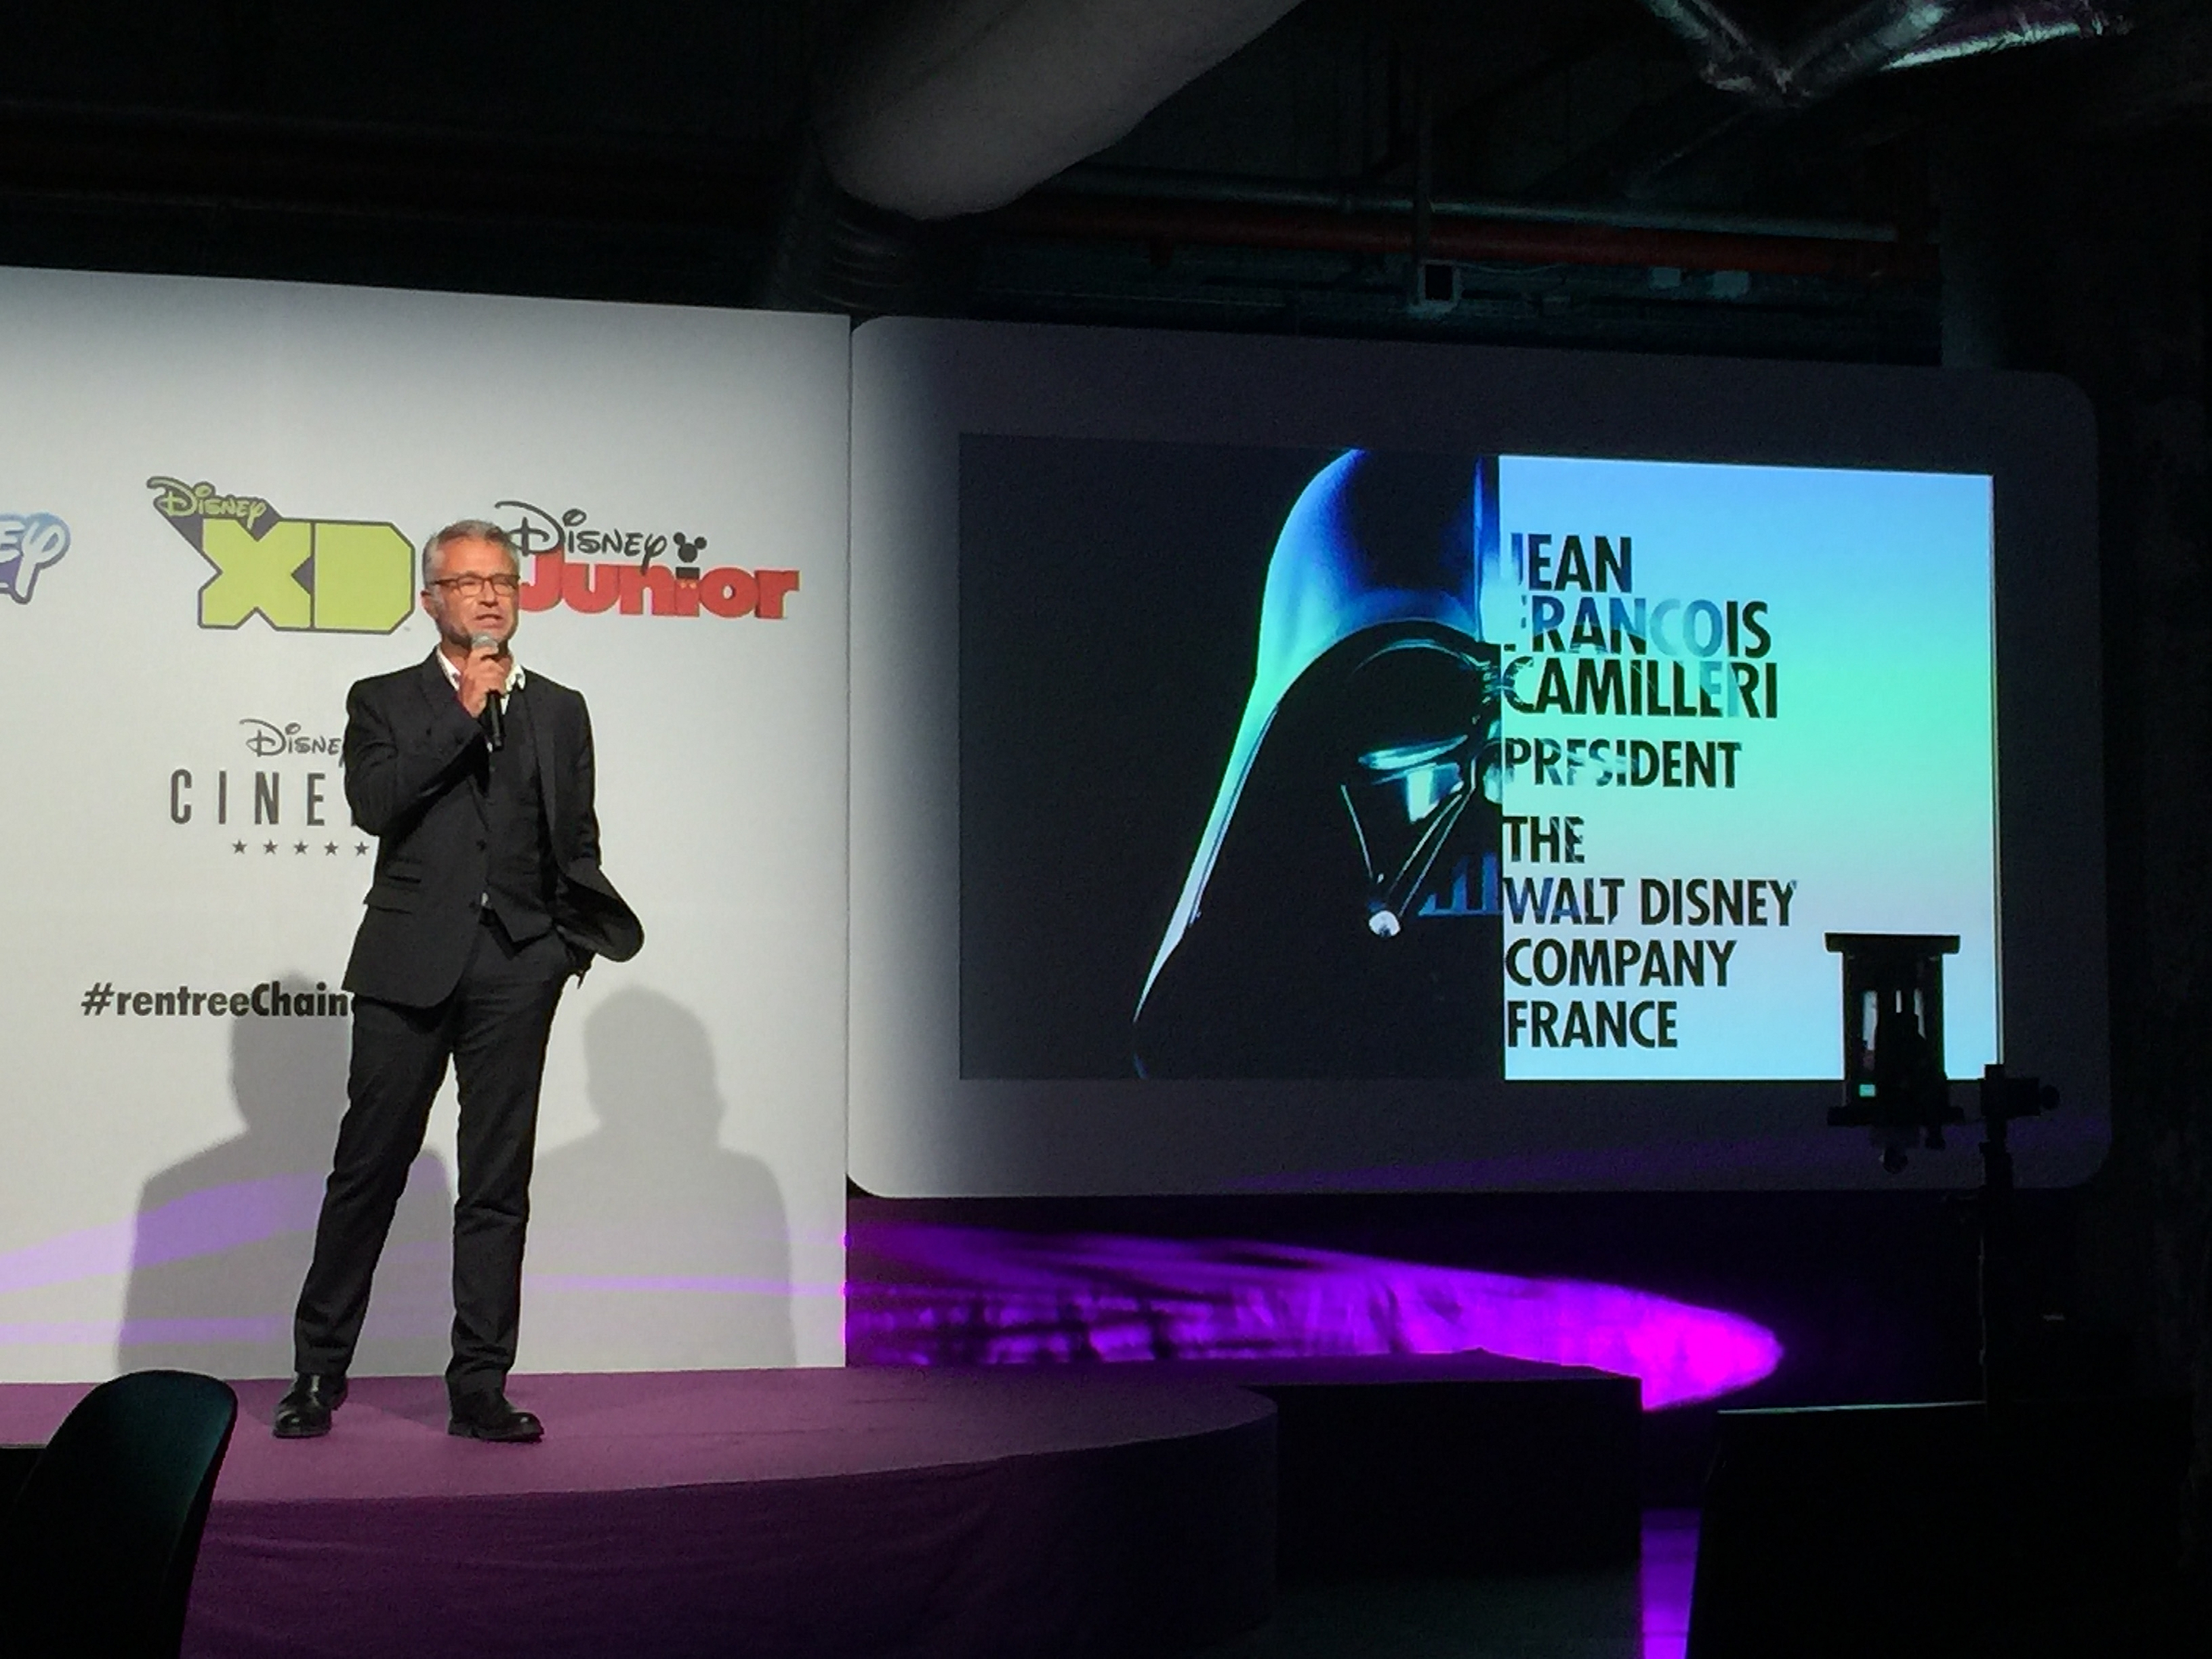 Illustration conférence chaines disney 2015-2016